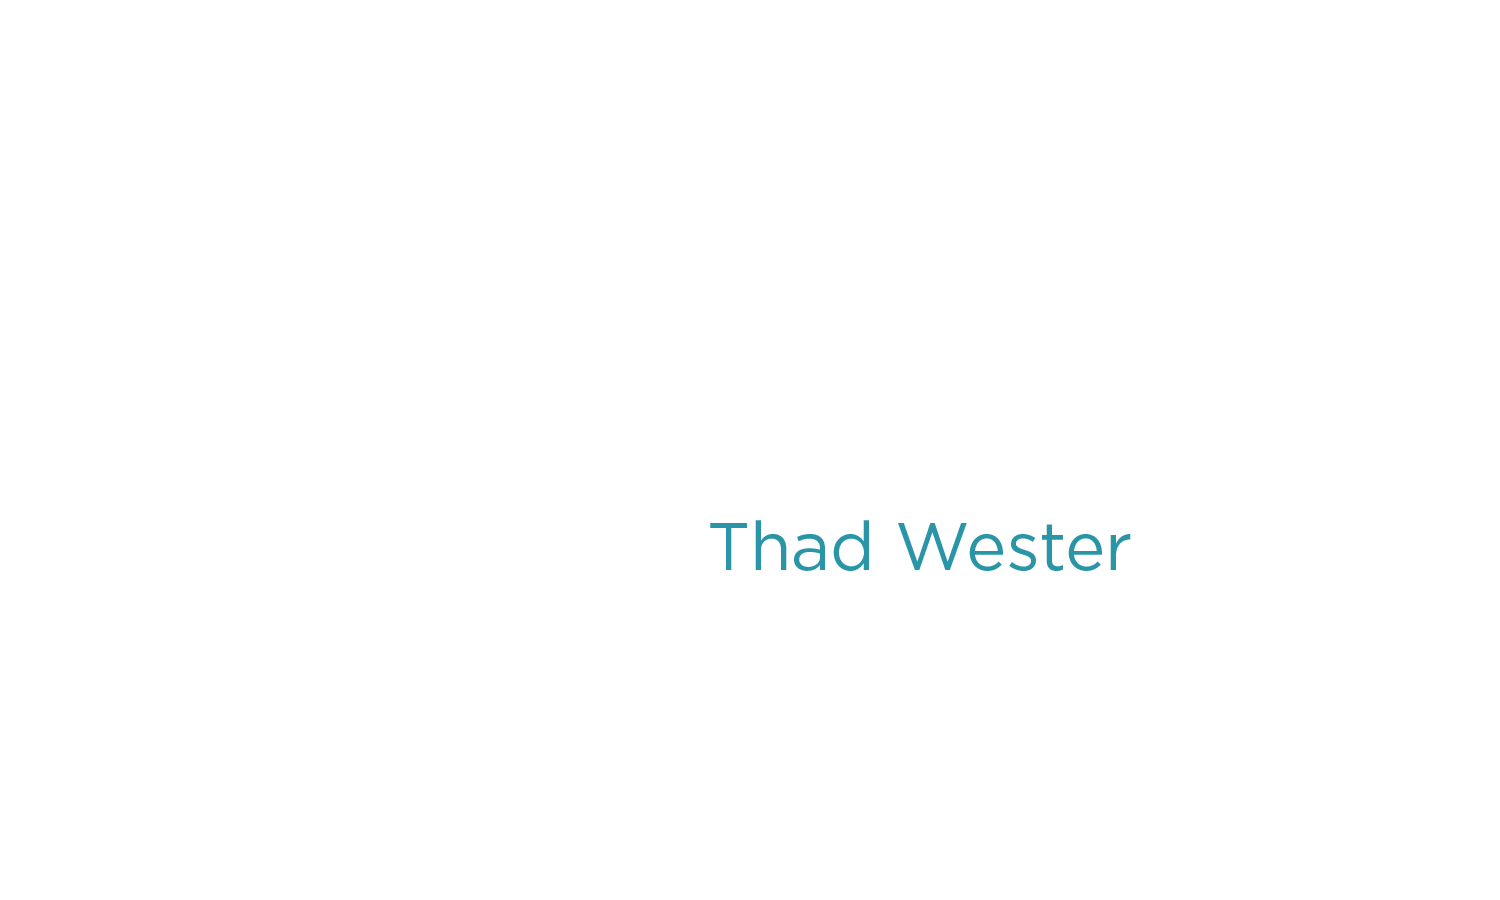 Thad Wester - 5Q-Title-05-Thad-Wester-01